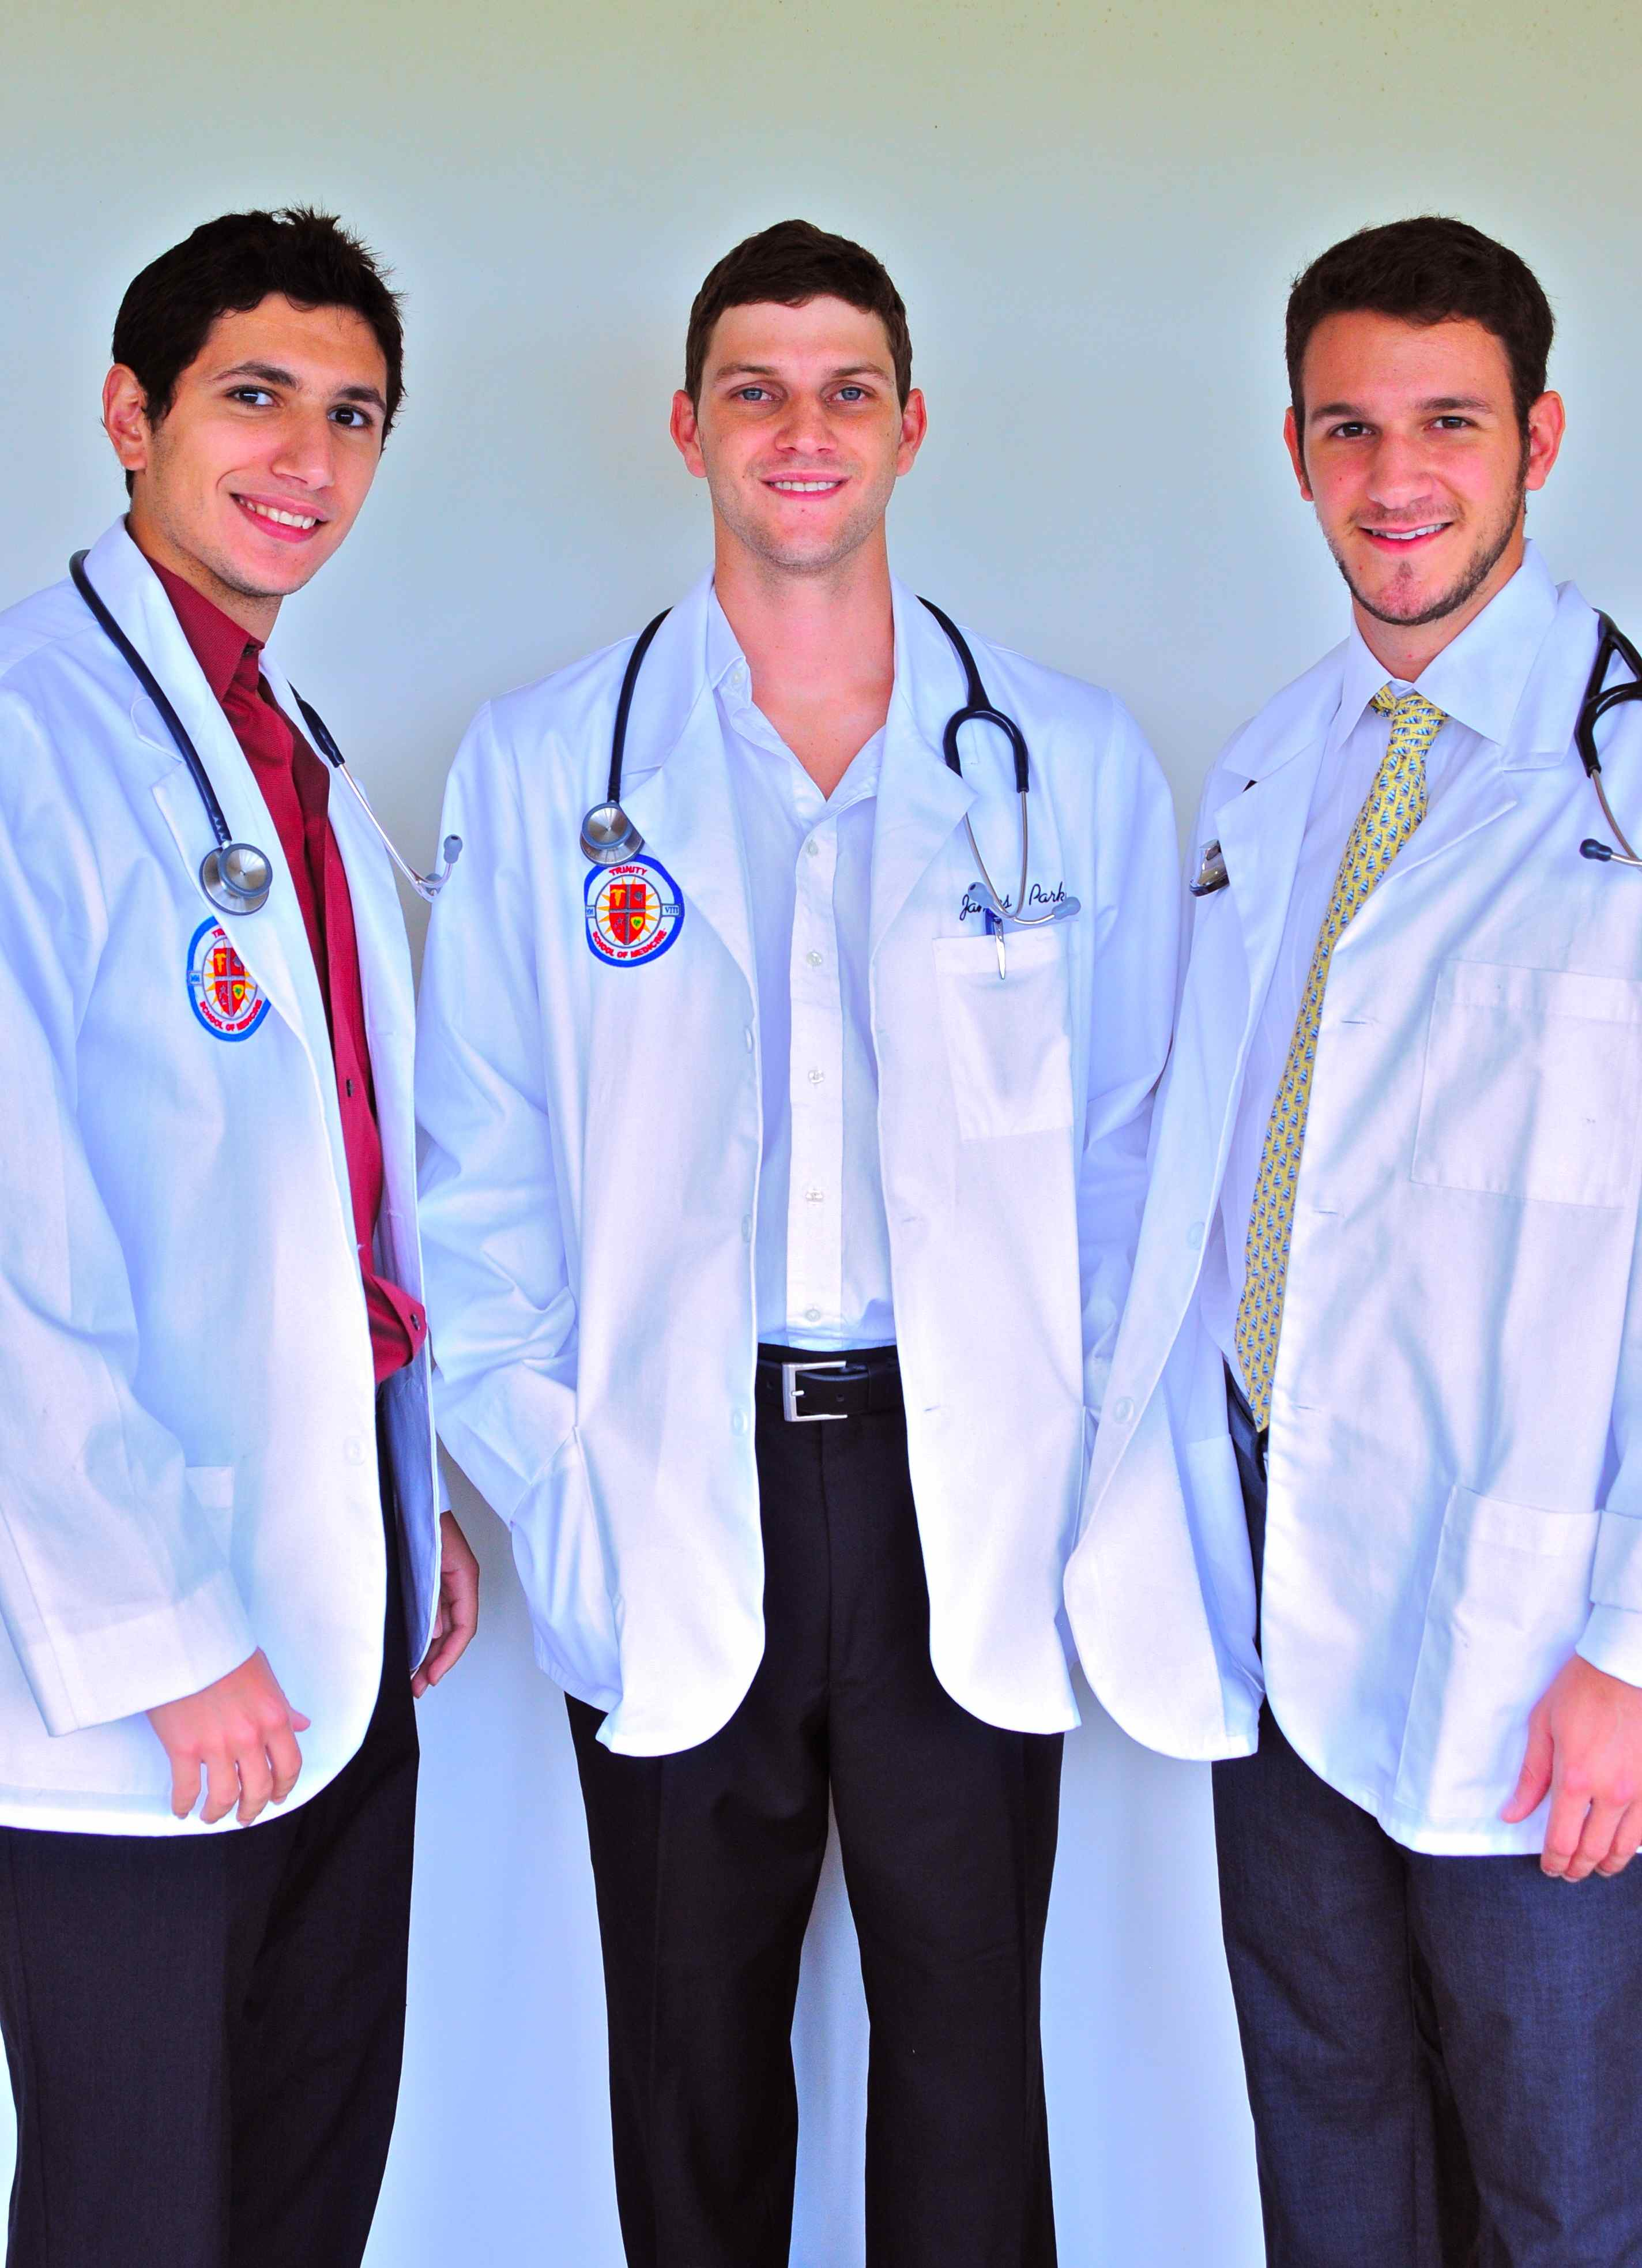 Caribbean Medical School Students Excel in US Clinical Clerkships